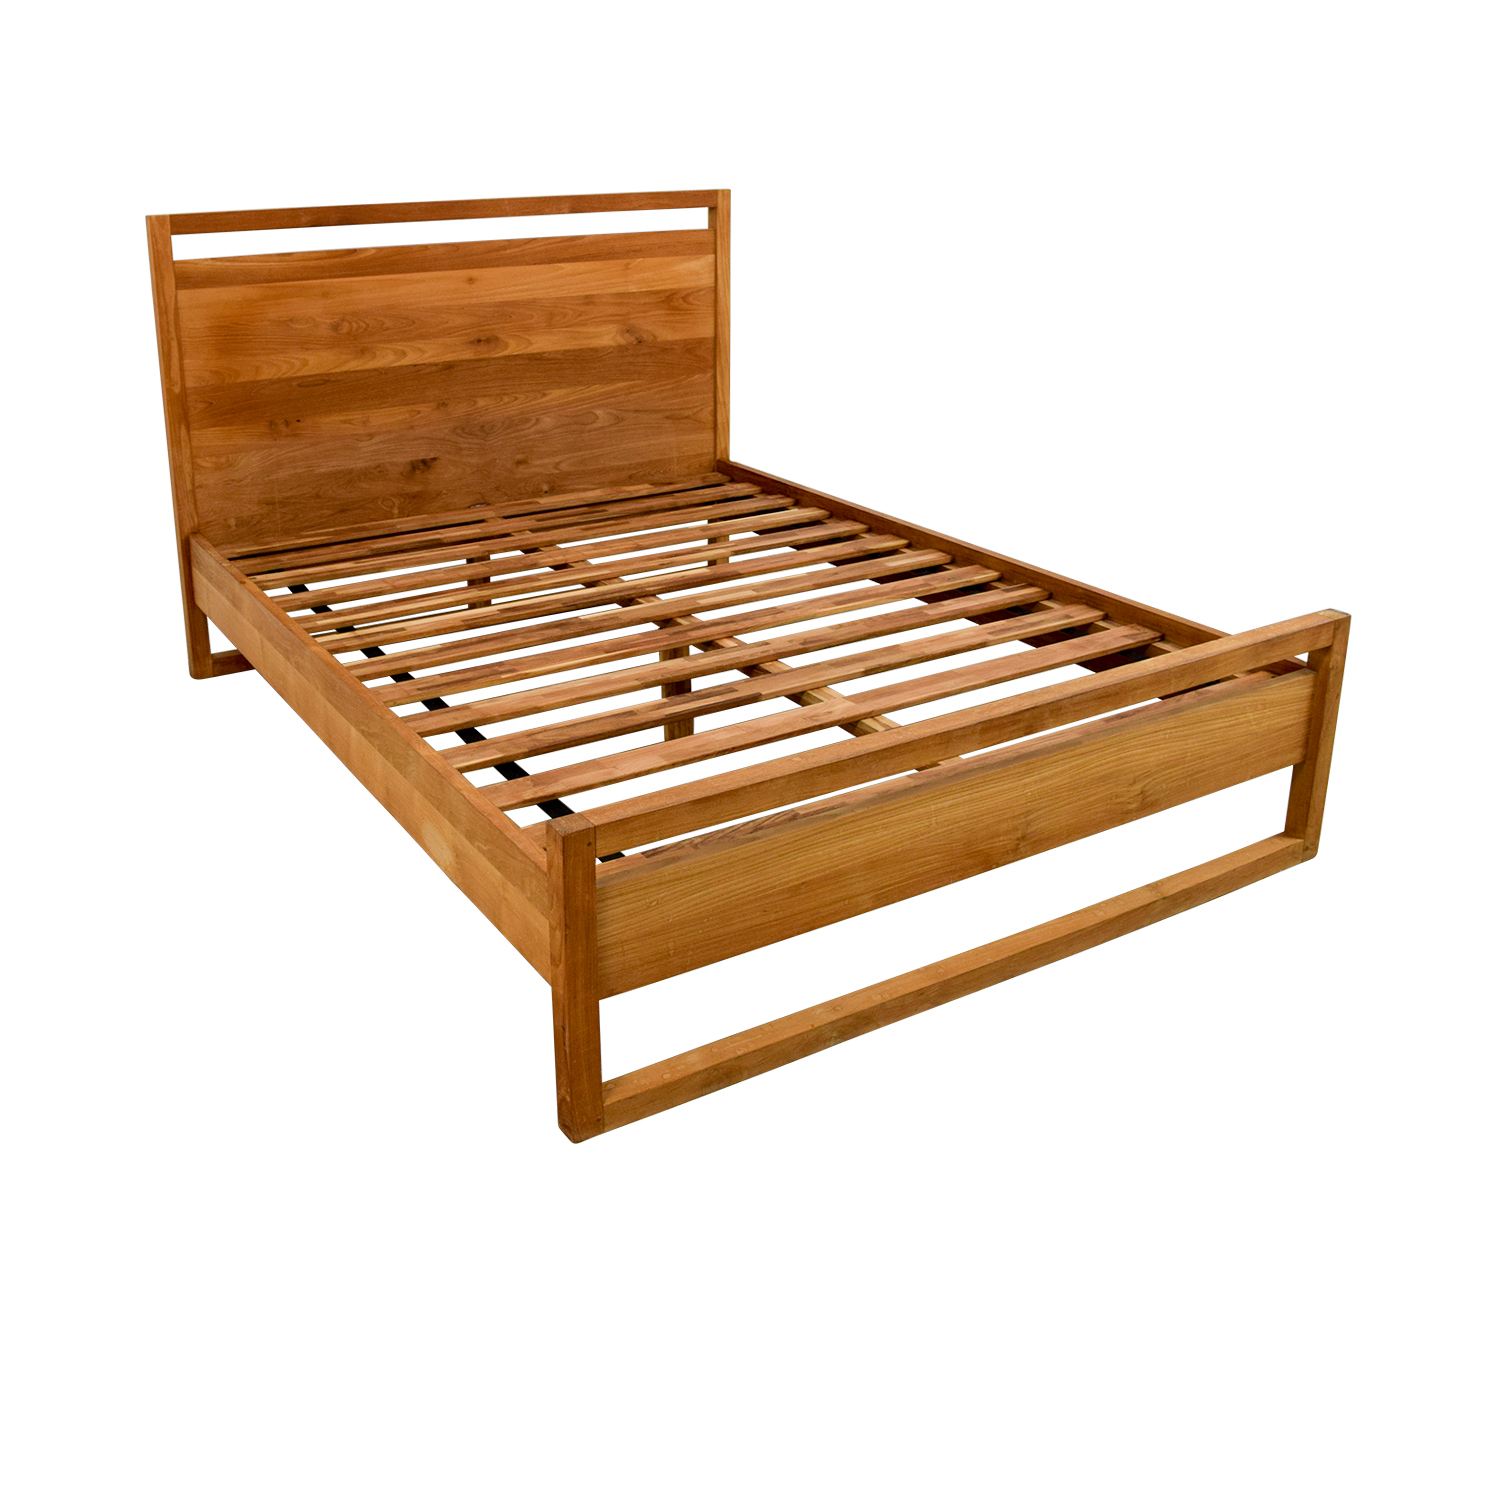 49 off crate and barrel crate and barrel linea platform 18576 | second hand crate and barrel linea platform queen bed